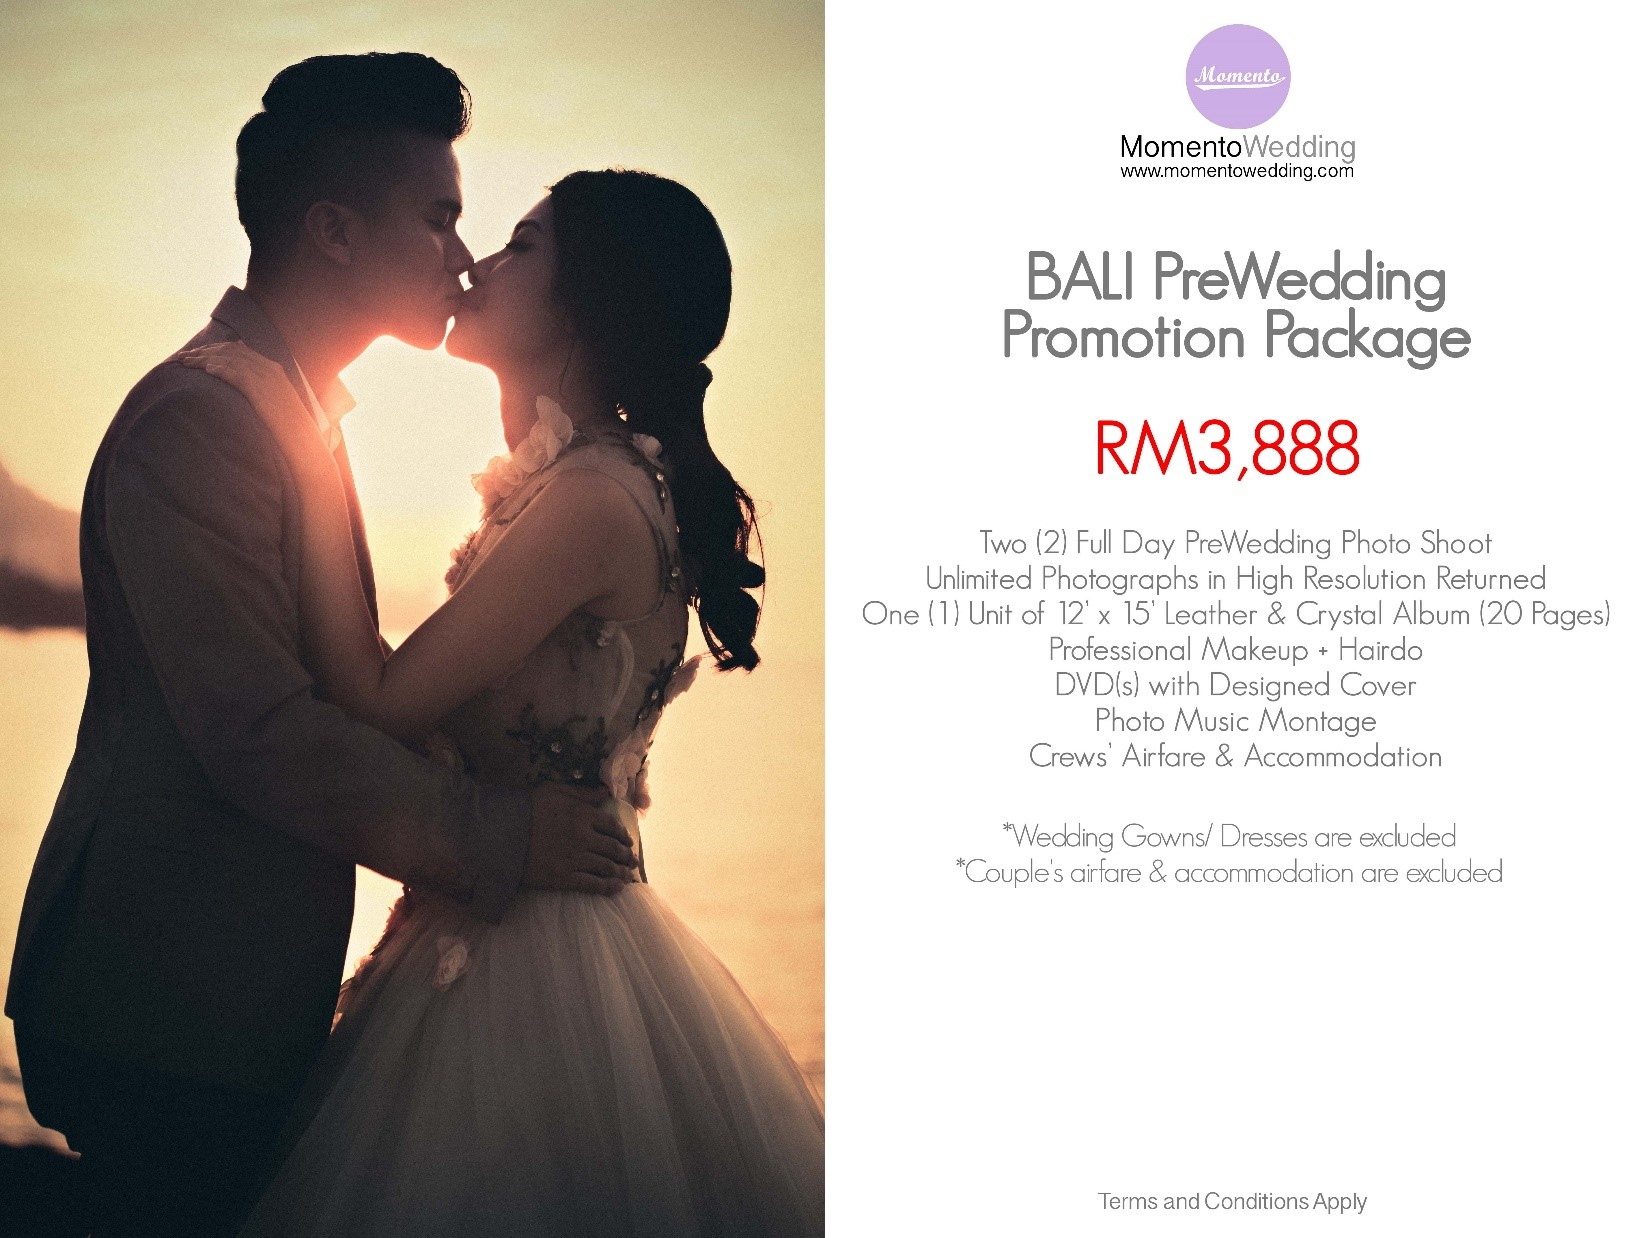 Pre Wedding Promotion Package Bali